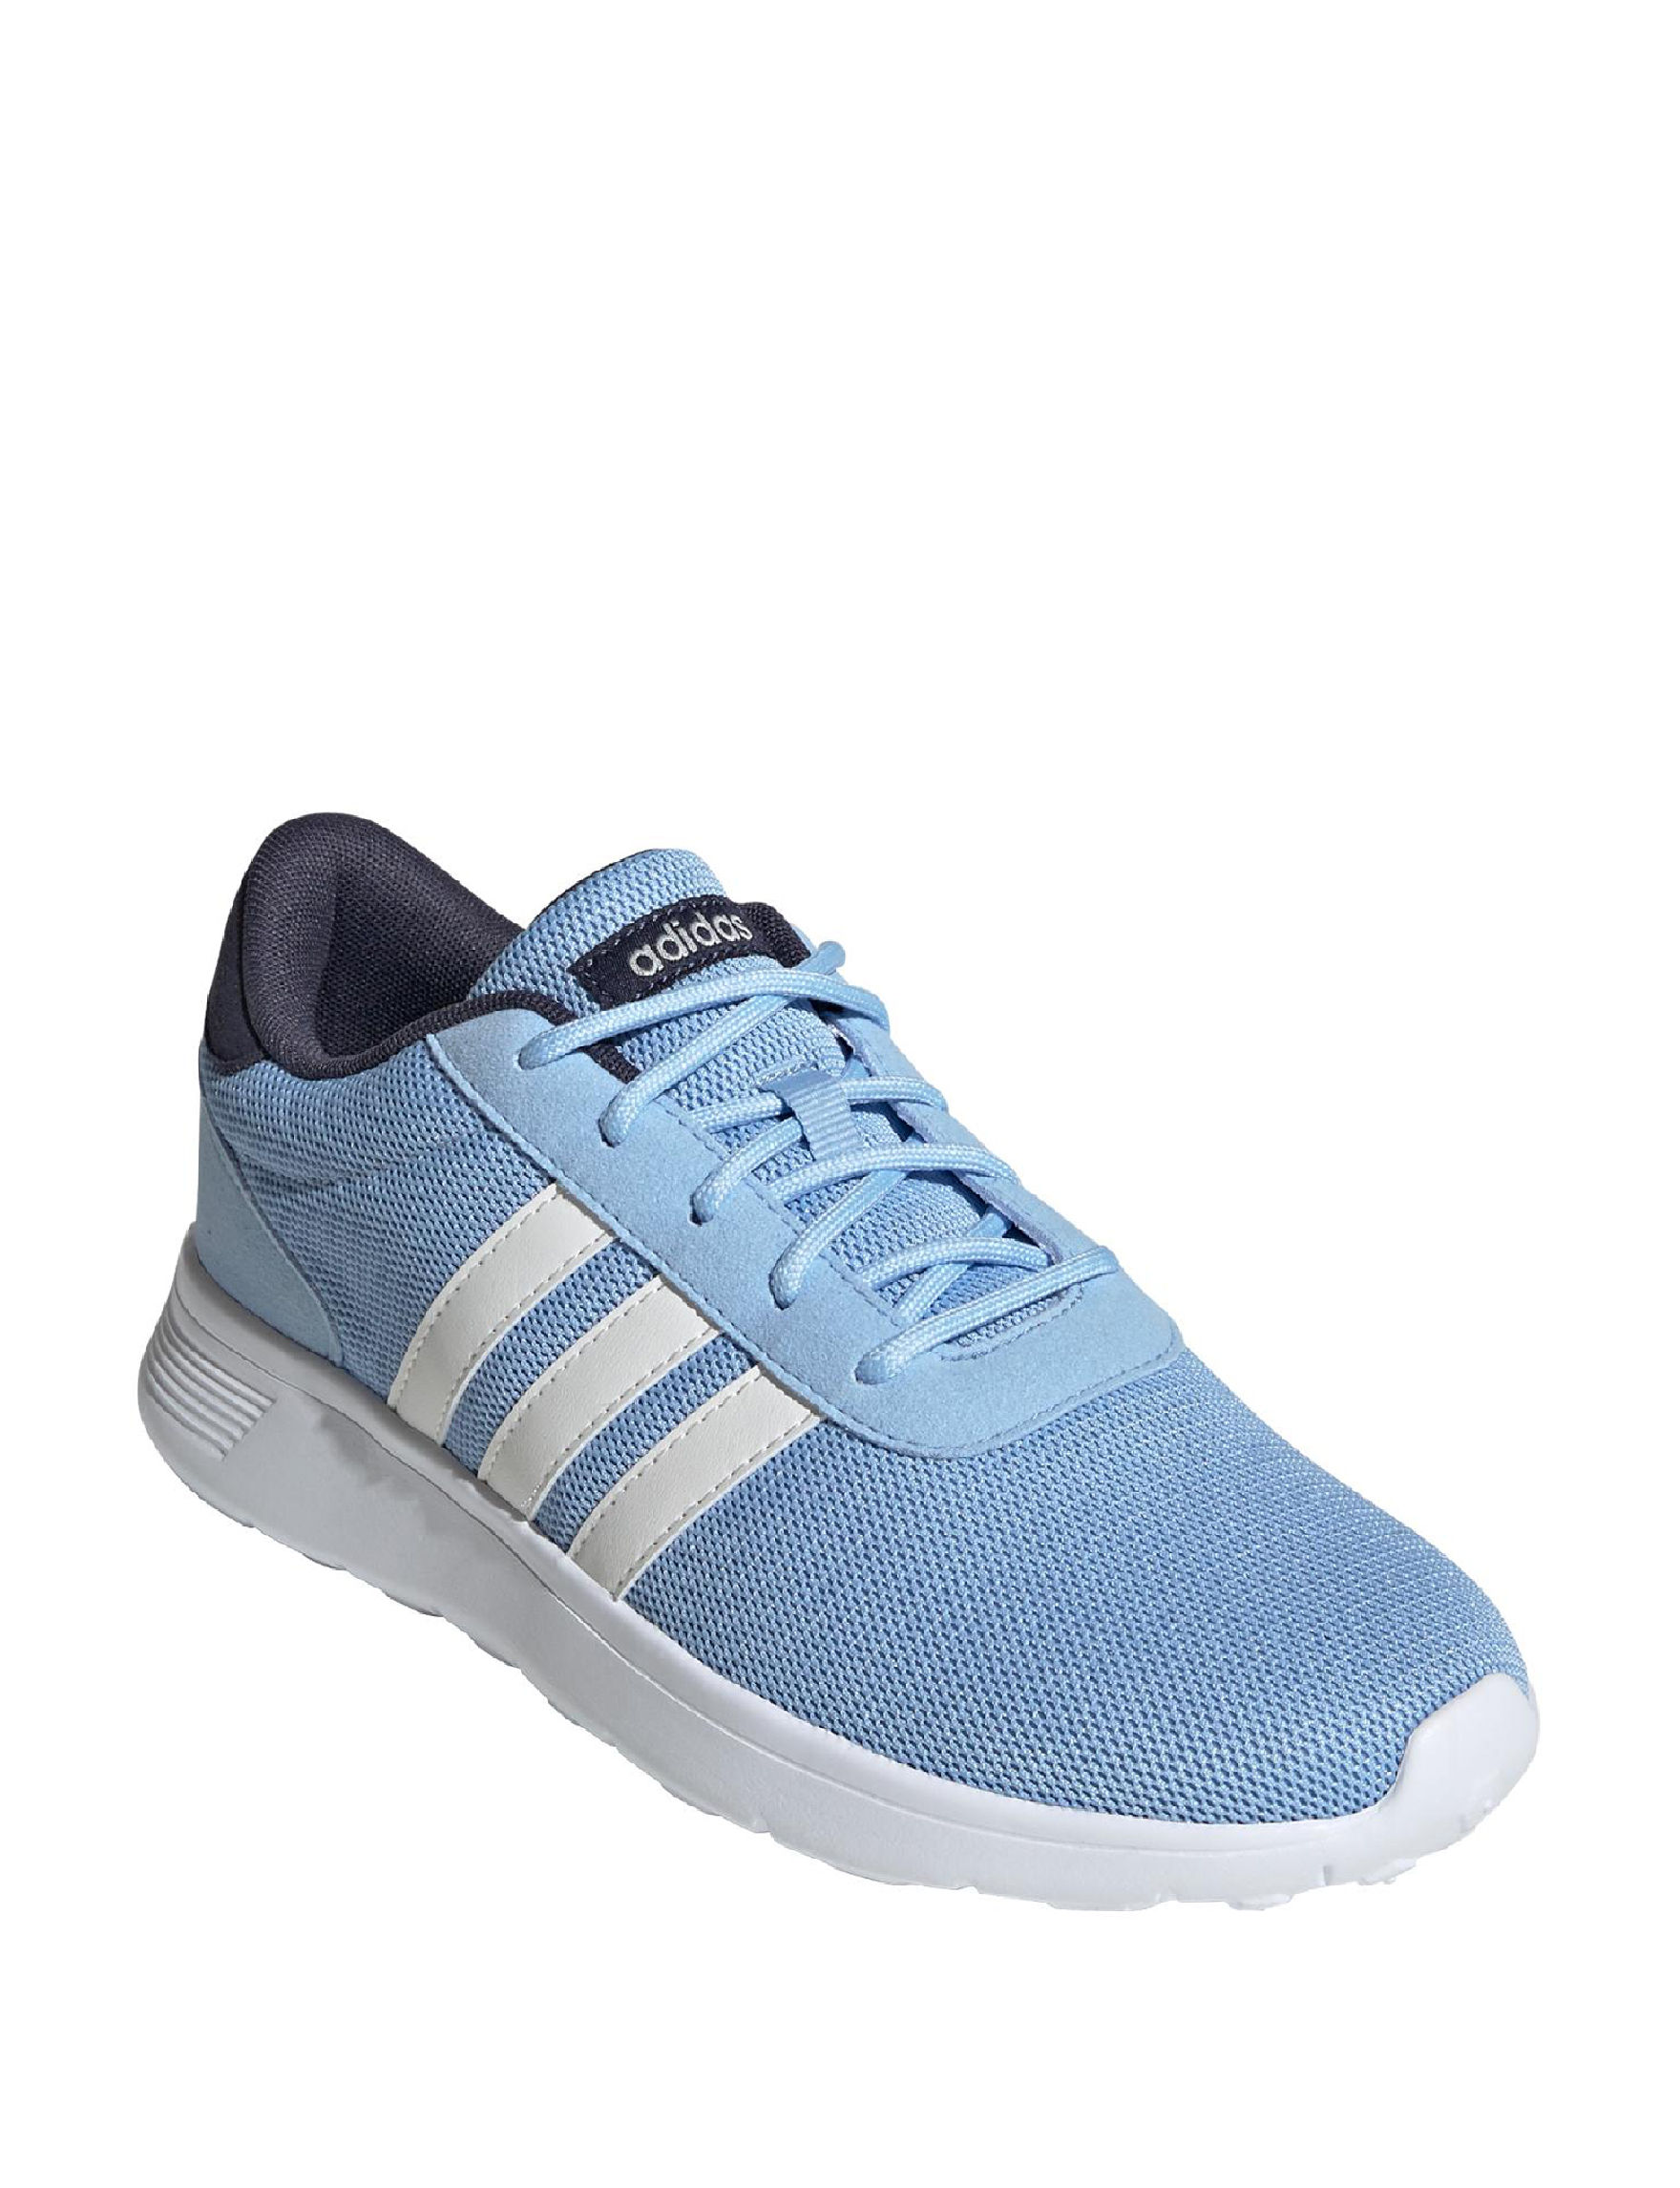 Adidas Blue Comfort Shoes